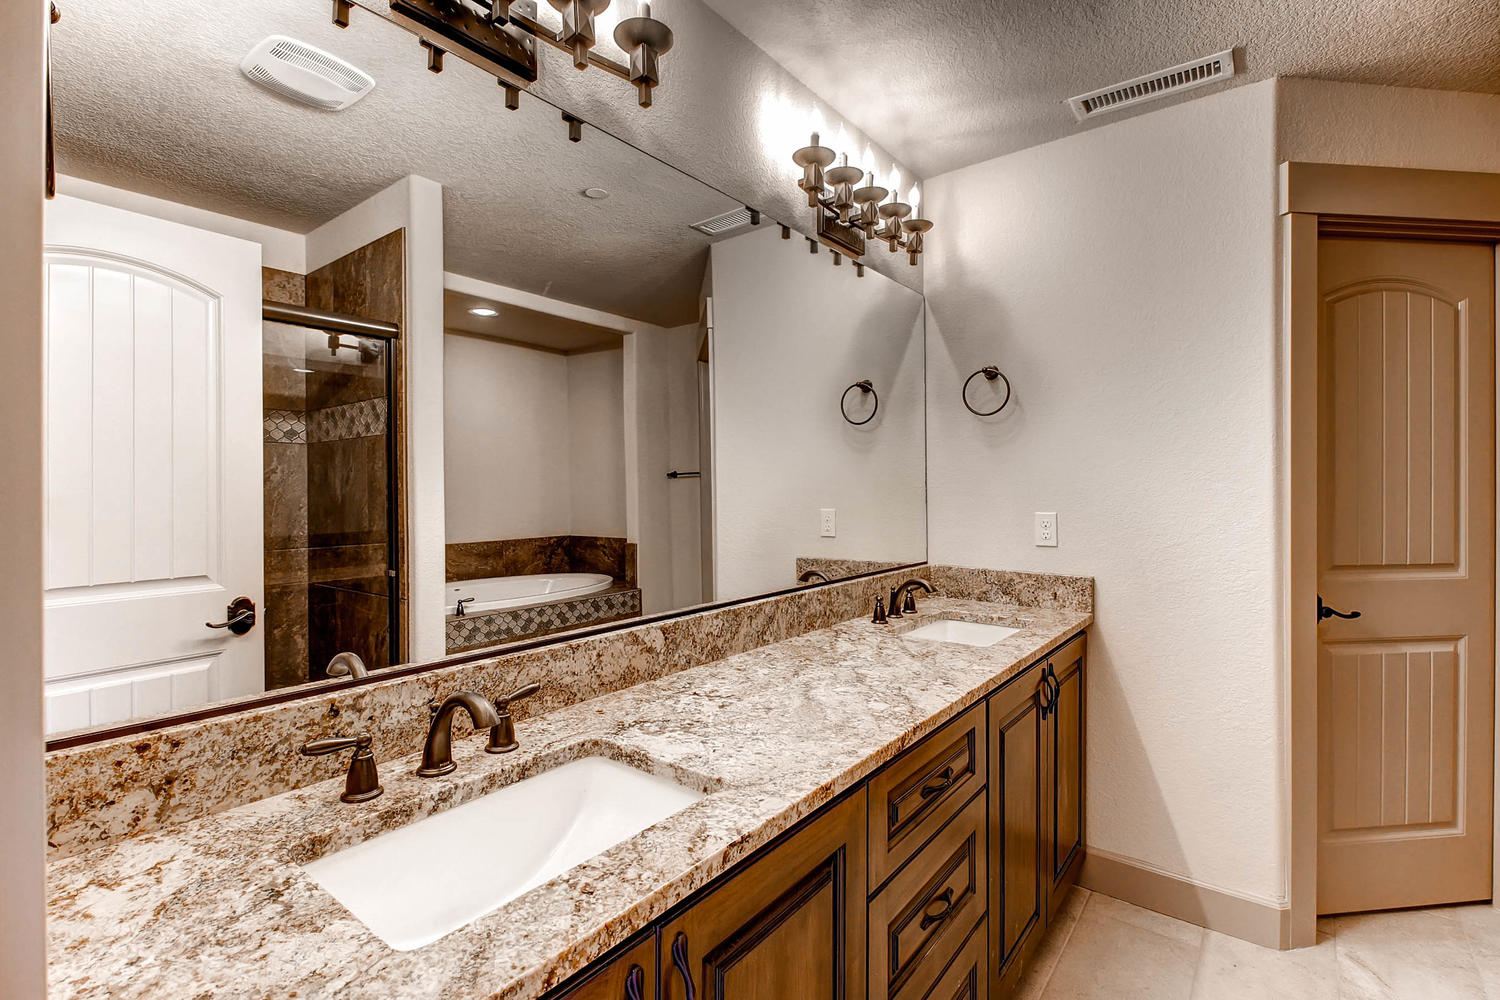 450 Augusta st se Salem OR-large-019-25-2nd Floor Master Bathroom-1500x1000-72dpi.jpg